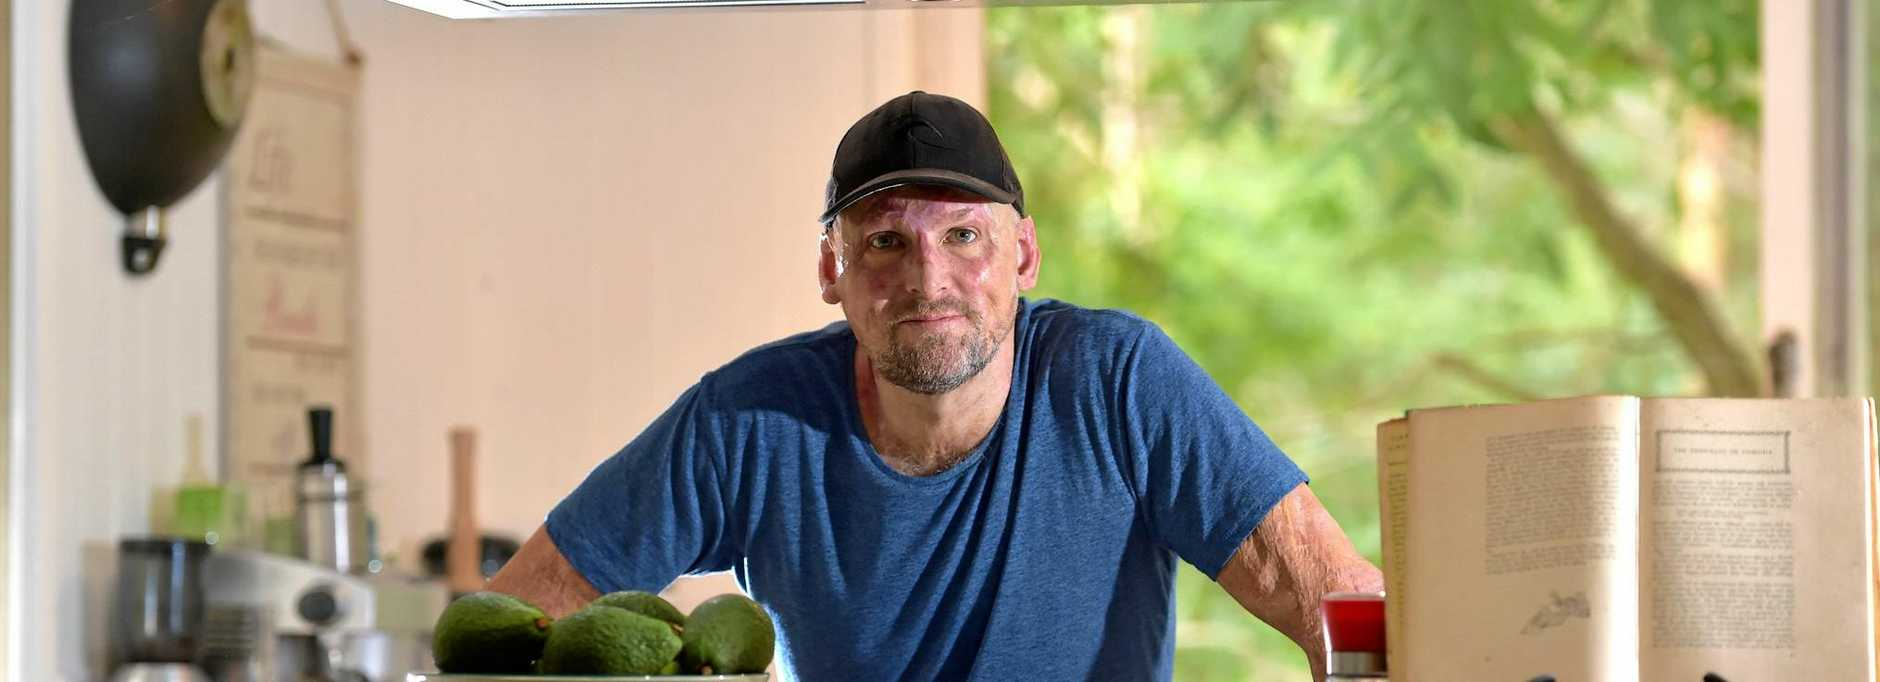 Chef Matt Golinski has a busy schedule at home in the garden and at work.